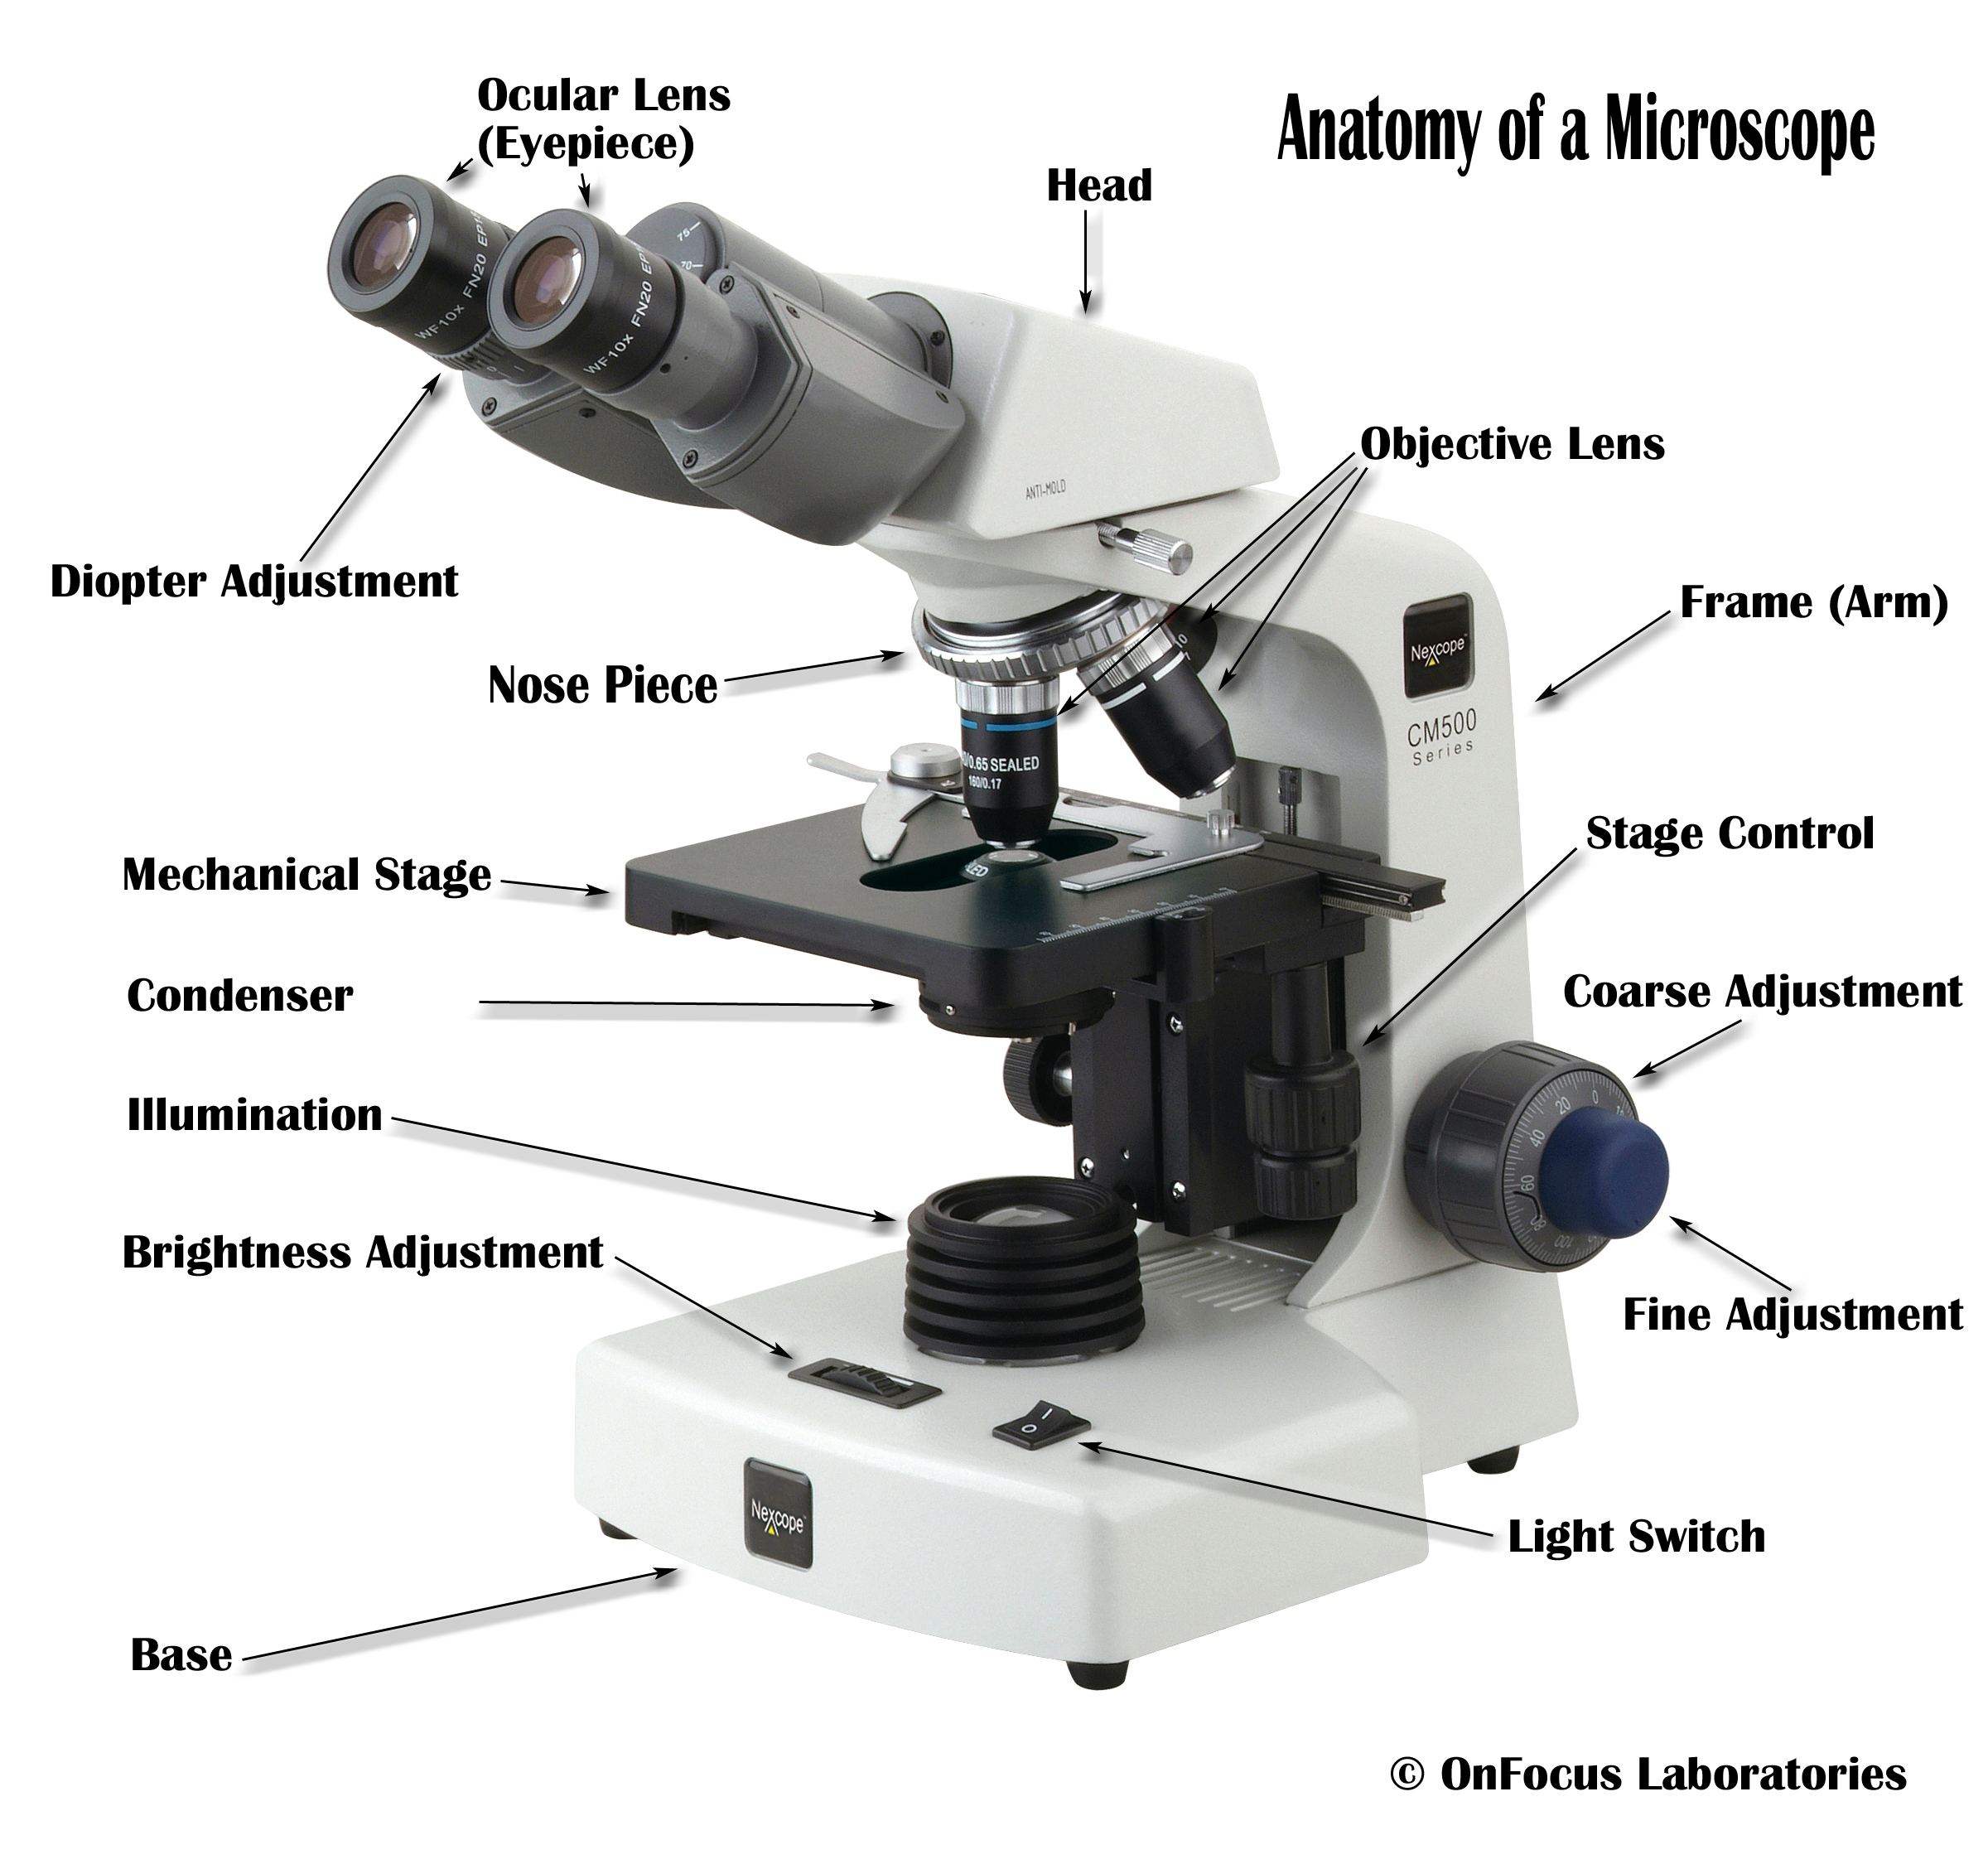 Where can you find pictures of a labeled microscope - The QA wiki